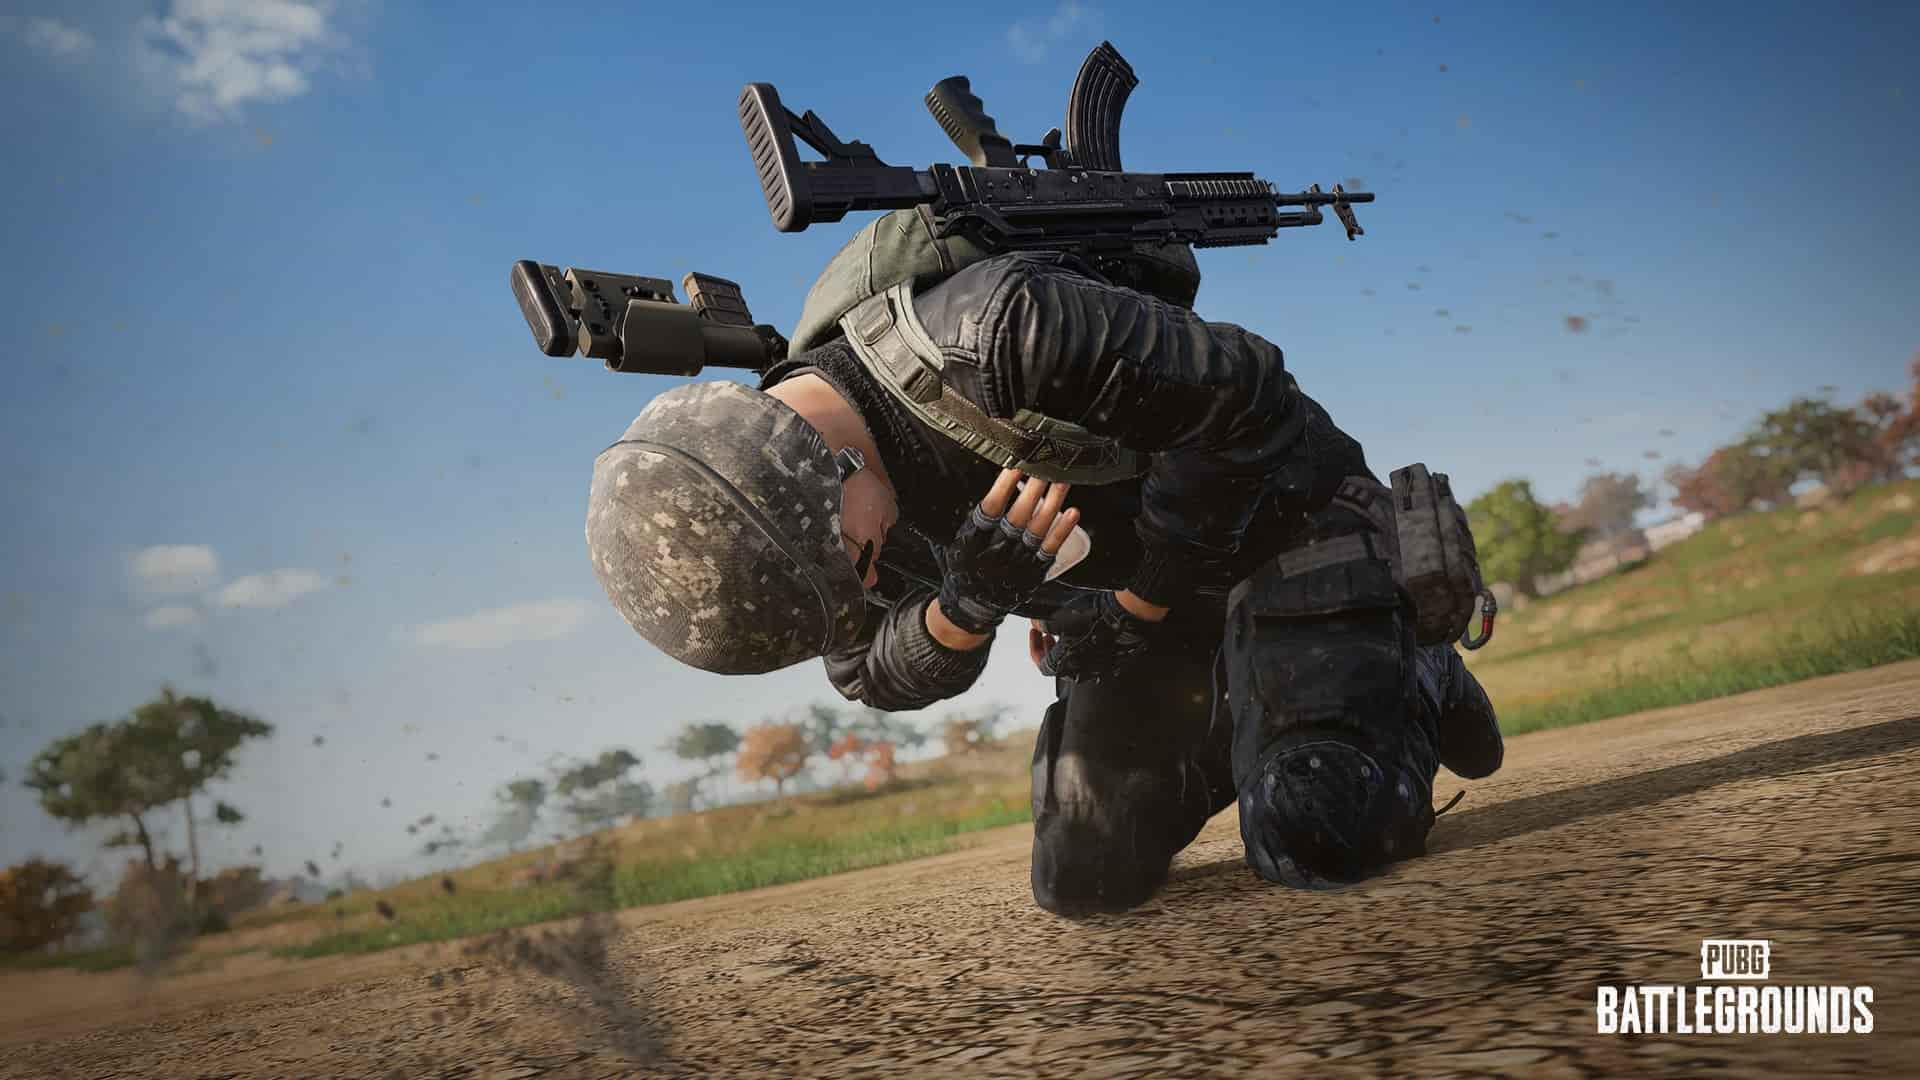 pubg-patch-update-12.2-whispers-chat